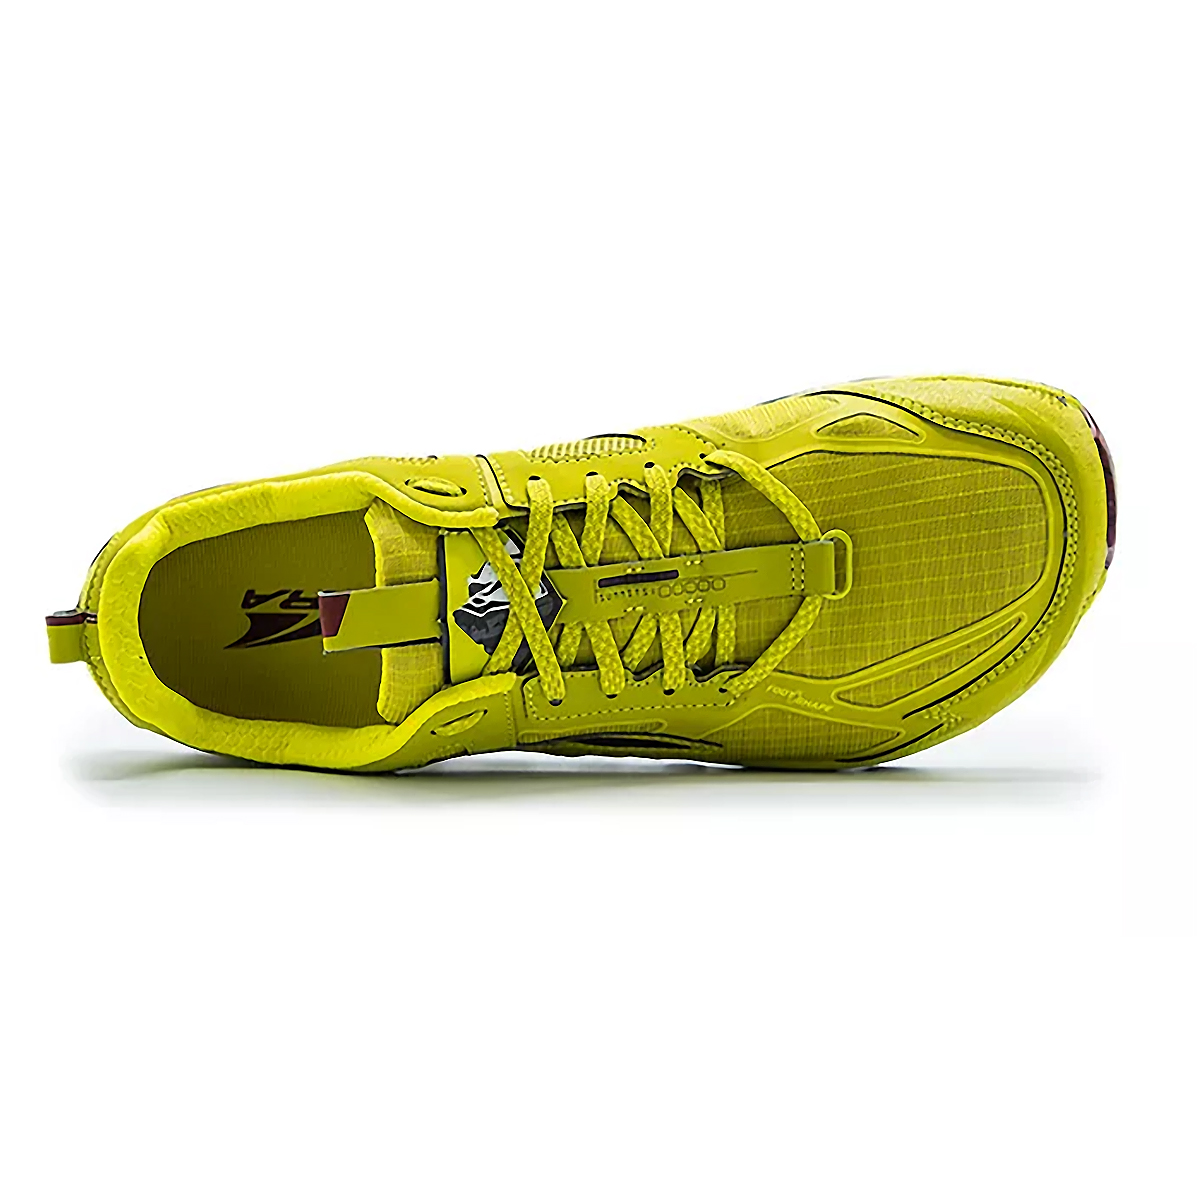 Men's Altra Lone Peak 4.5 Low Trail Running Shoe - Color: Lime/Red - Size: 7 - Width: Regular, Lime/Red, large, image 3